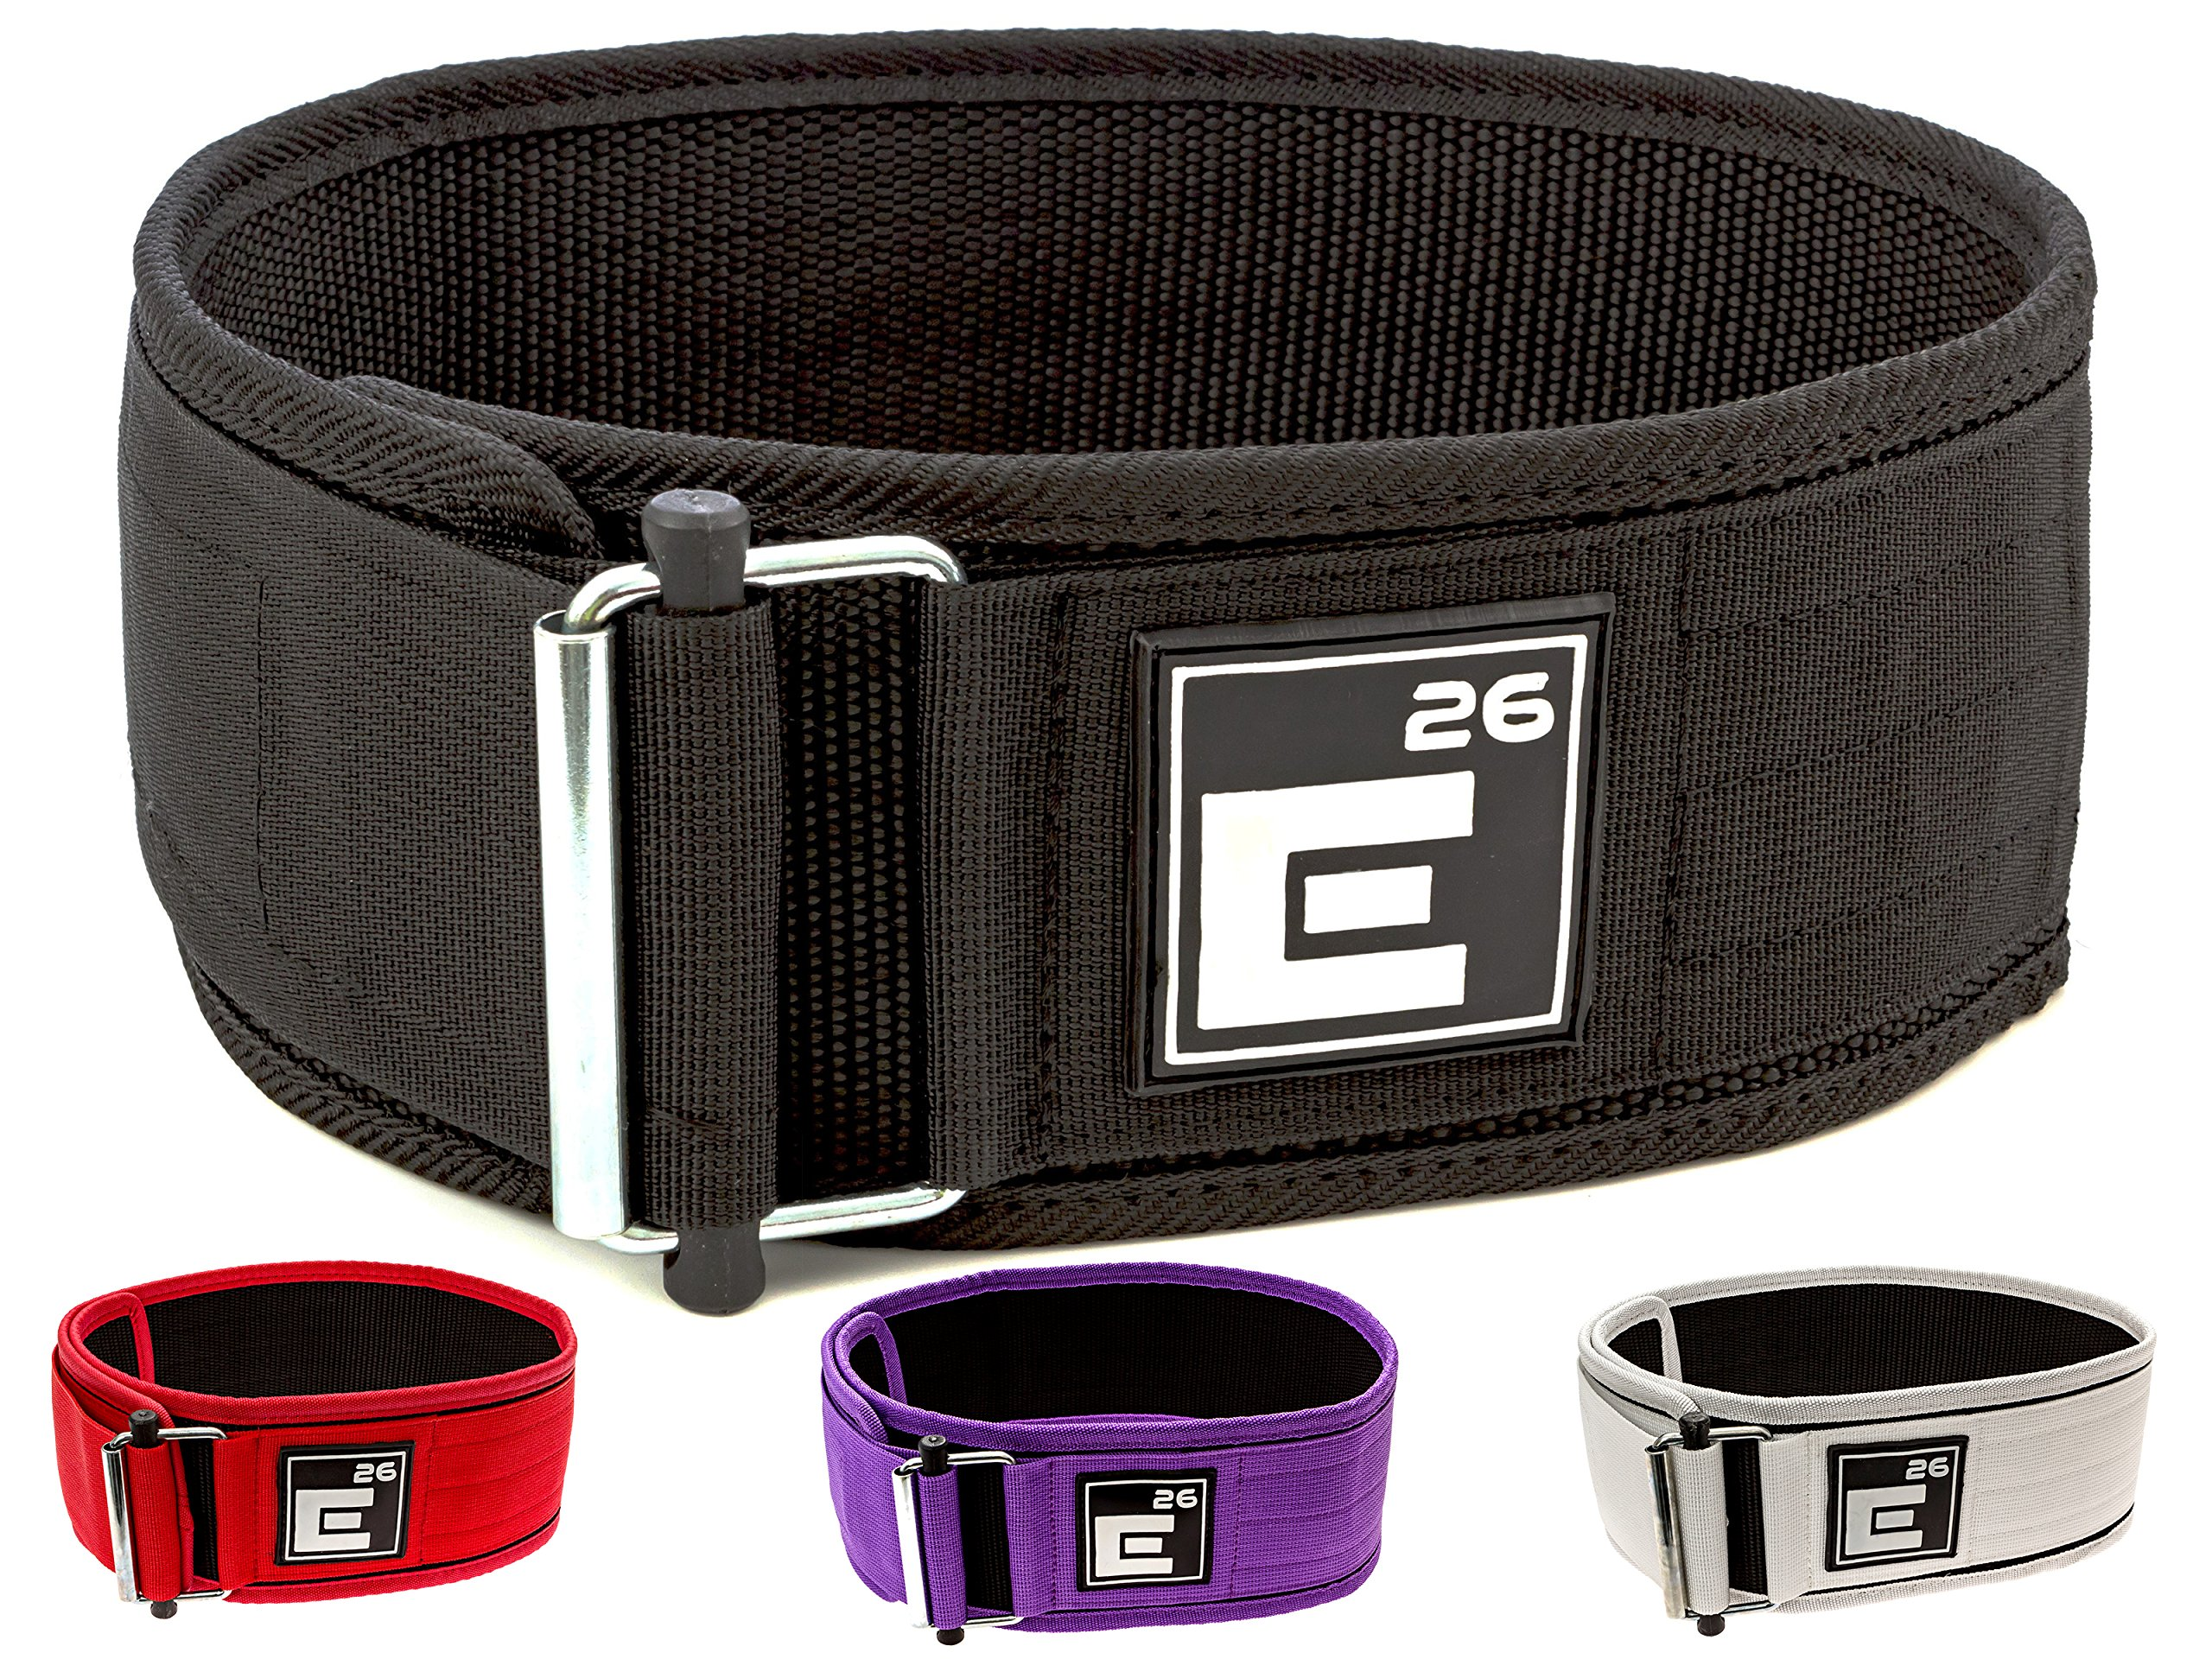 Self-Locking Weight Lifting Belt – Premium Weightlifting Belt for Serious Functional Fitness, Weight Lifting, and…